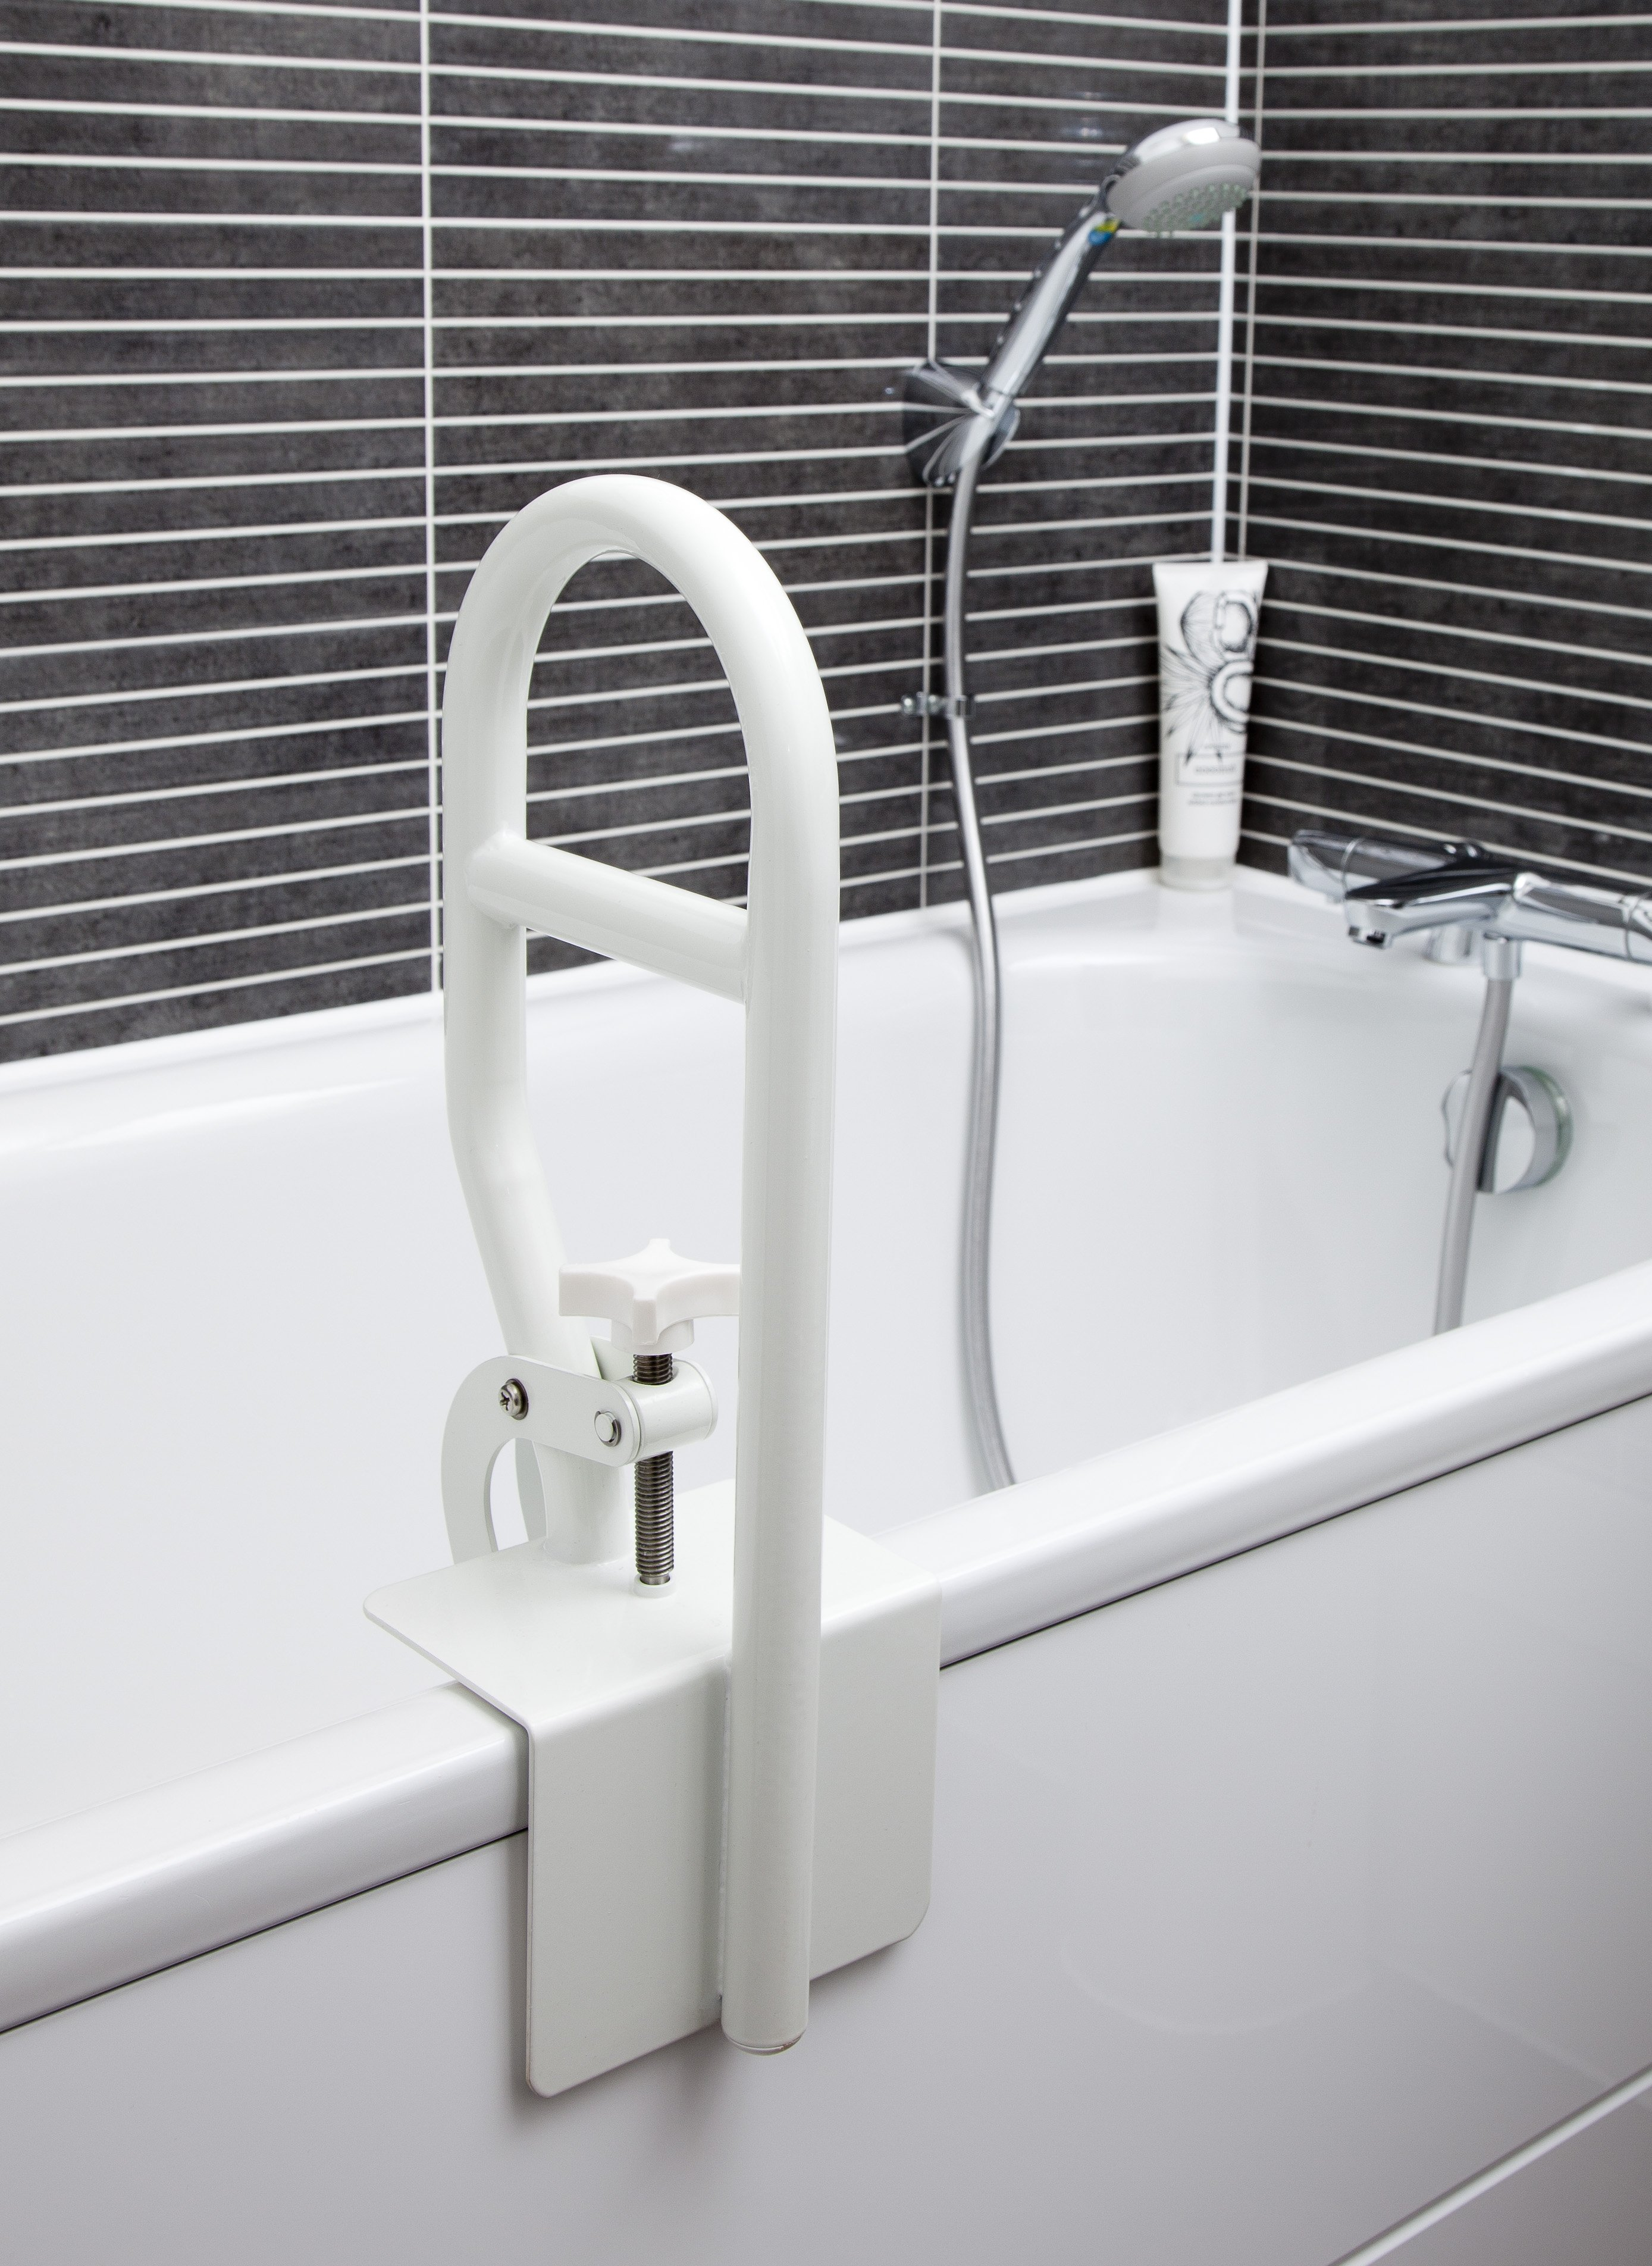 Grab rail attached to the side of a bath